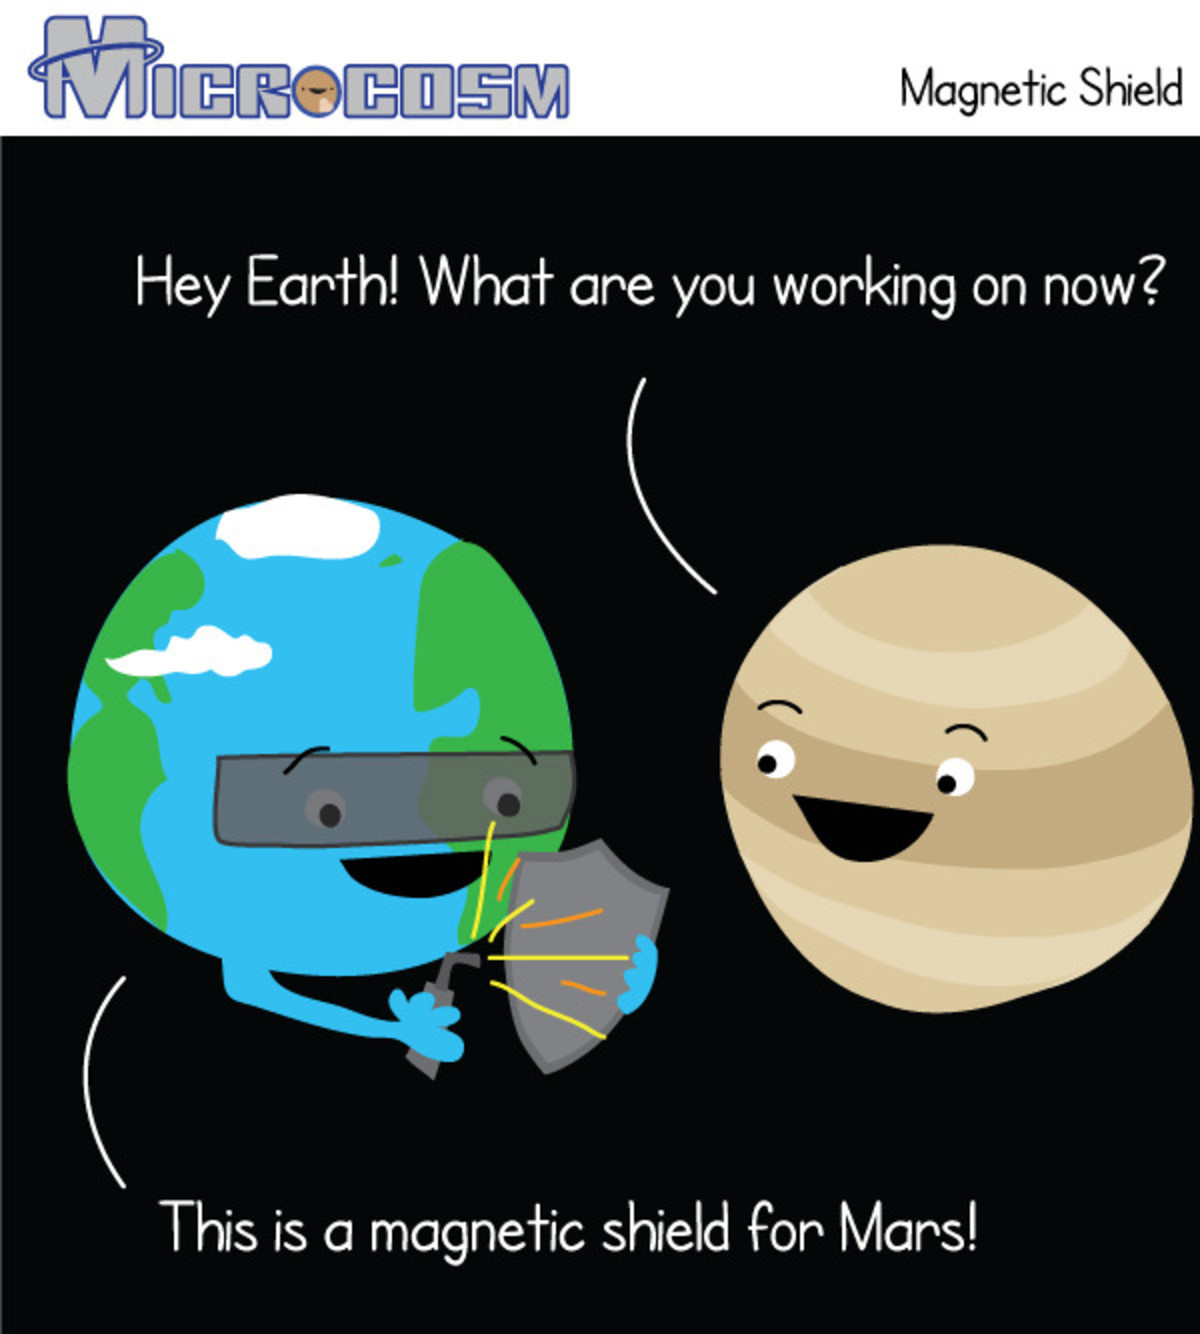 Microcosm - Magnetic Shield. . Hey are you working on now? This is an shield For Mars!. And that's the story of how Earth gave Mars crabs.